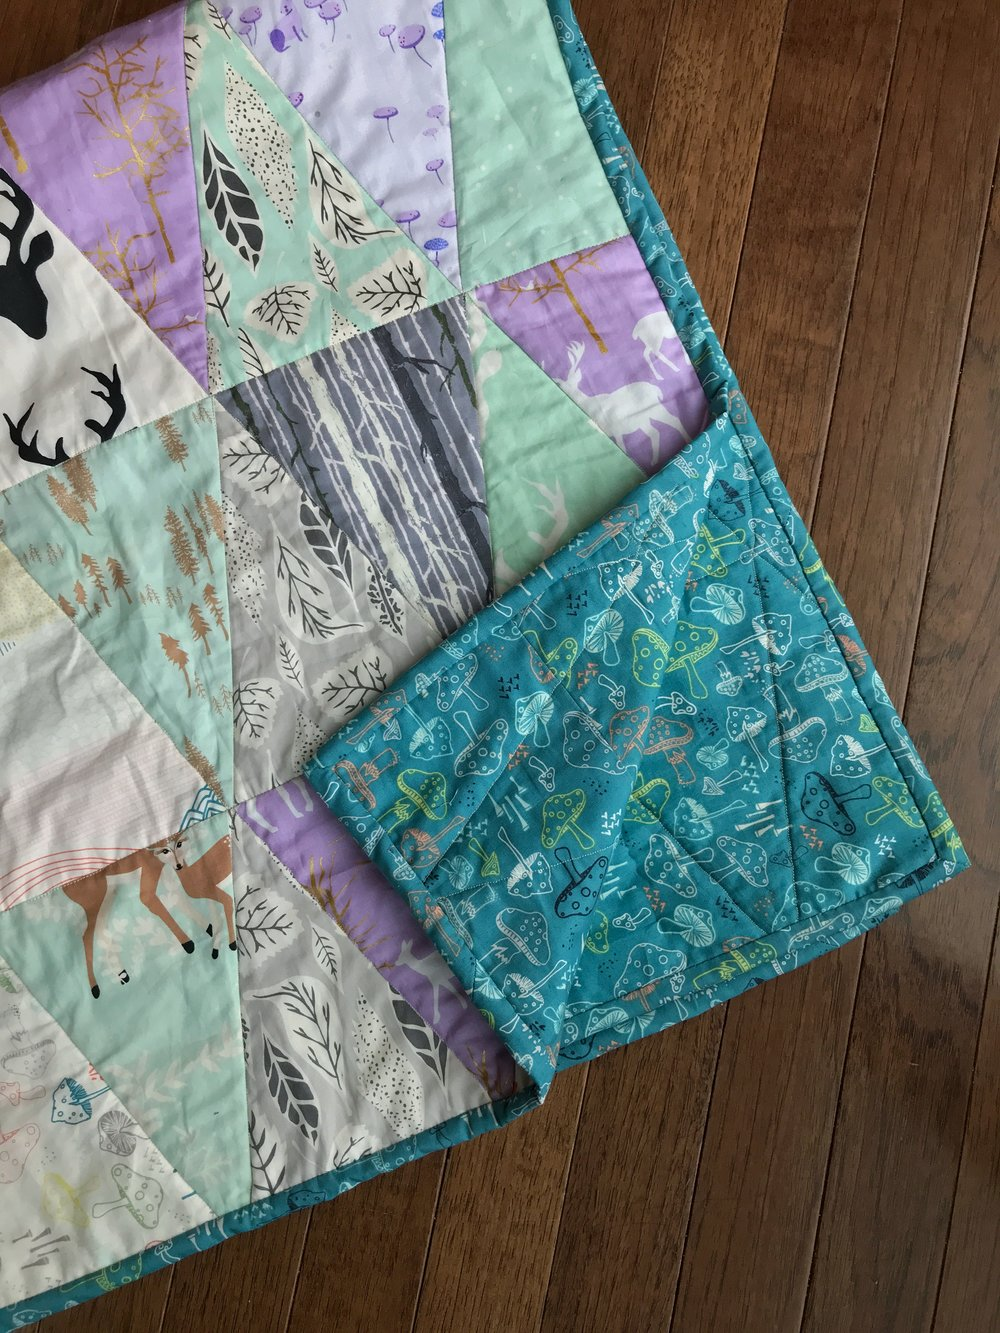 My First Quilt - Evelyn's Triangle Quilt